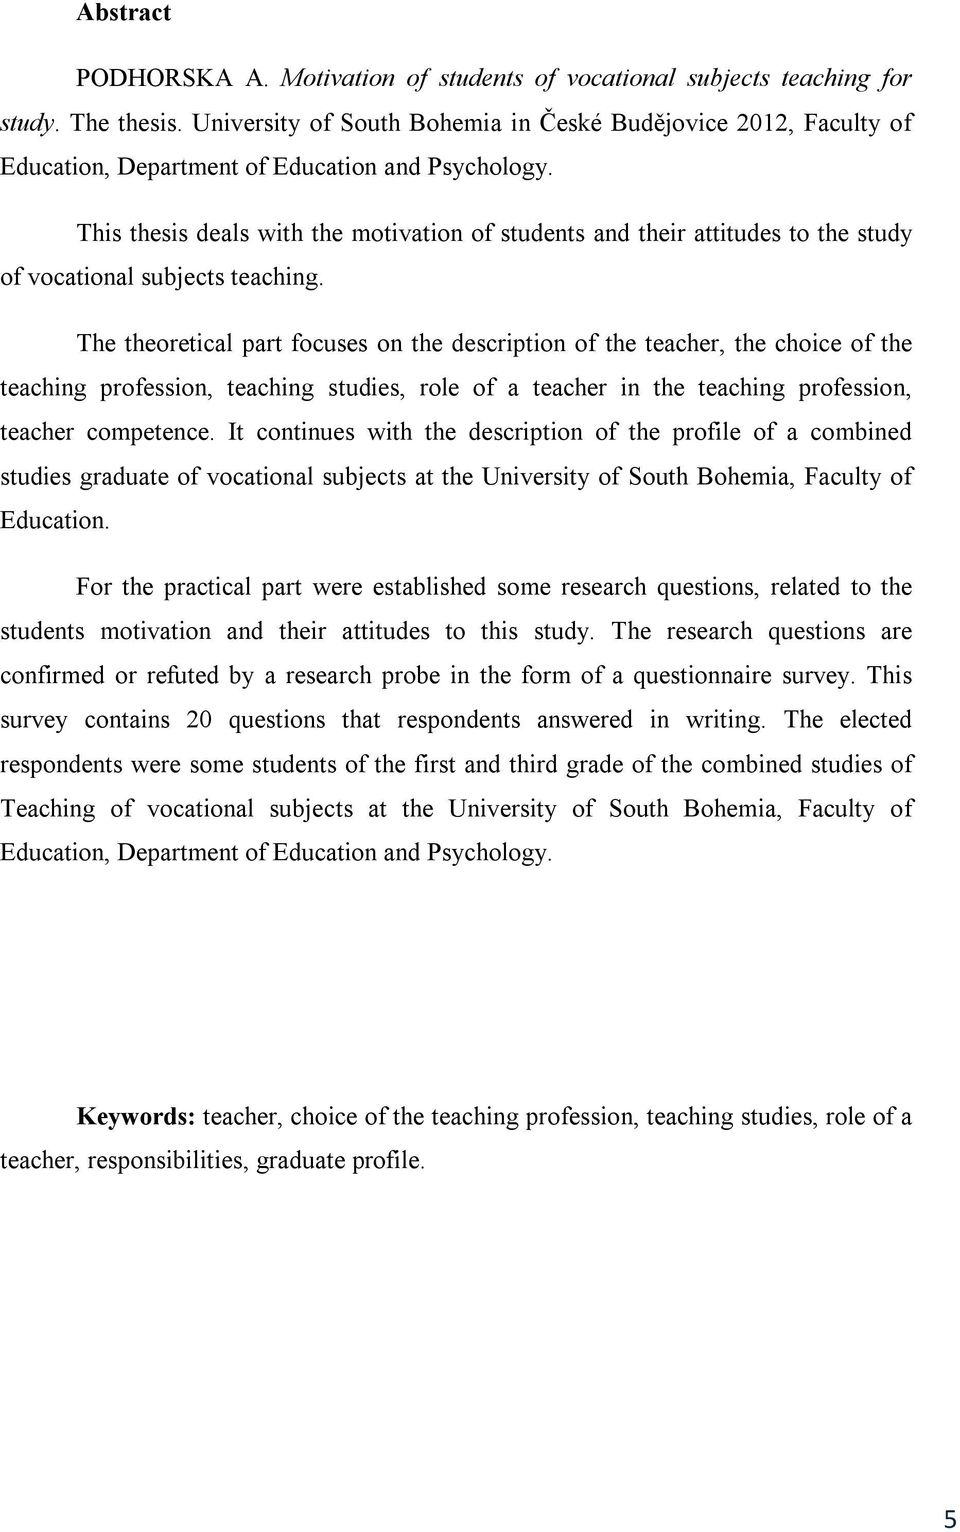 This thesis deals with the motivation of students and their attitudes to the study of vocational subjects teaching.